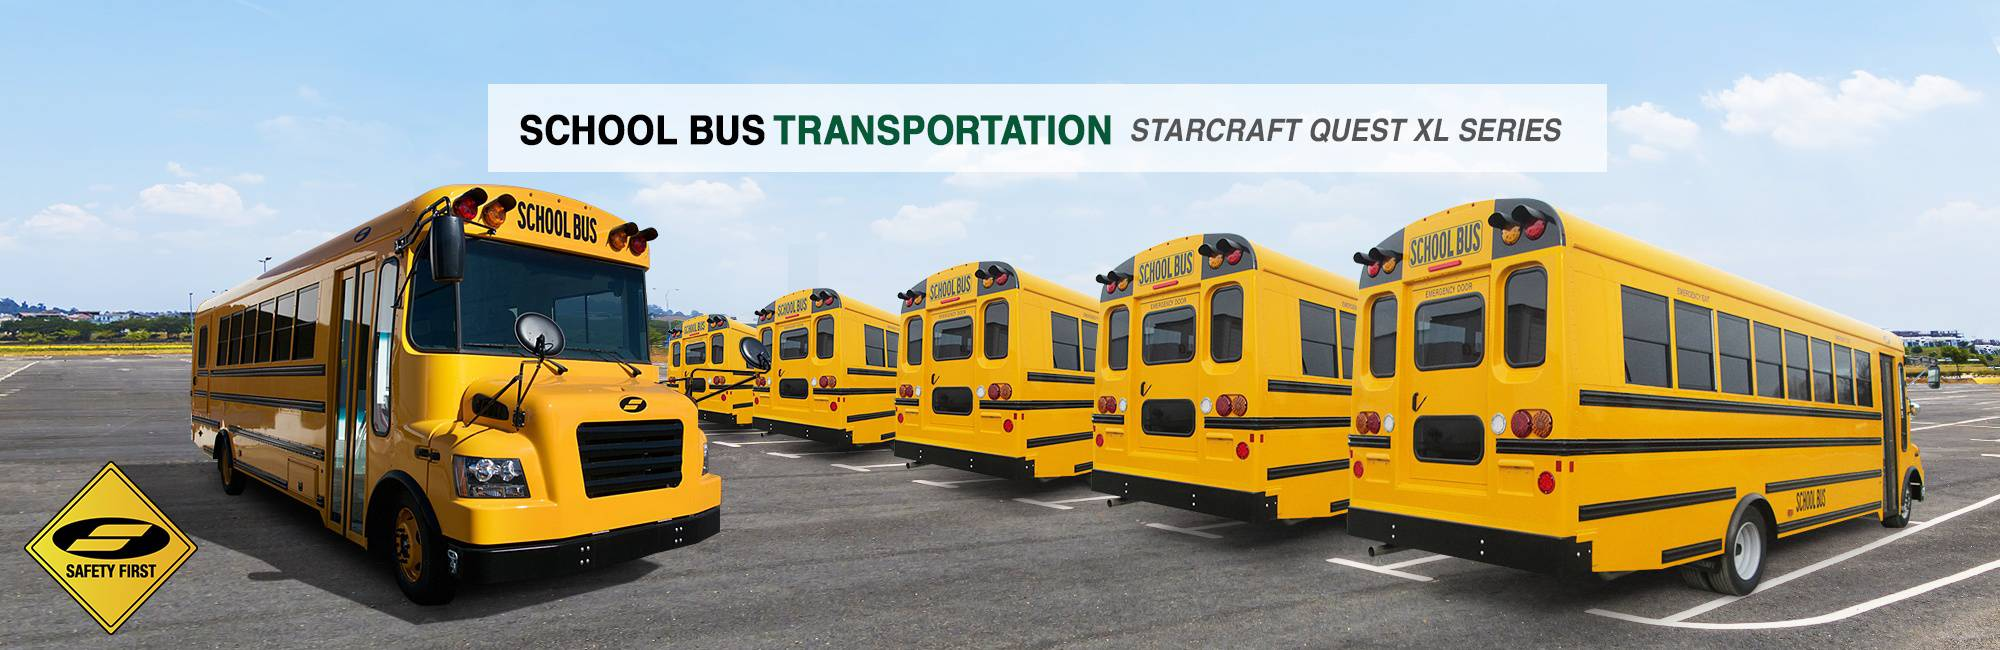 Starcraft Quest XL School Buses